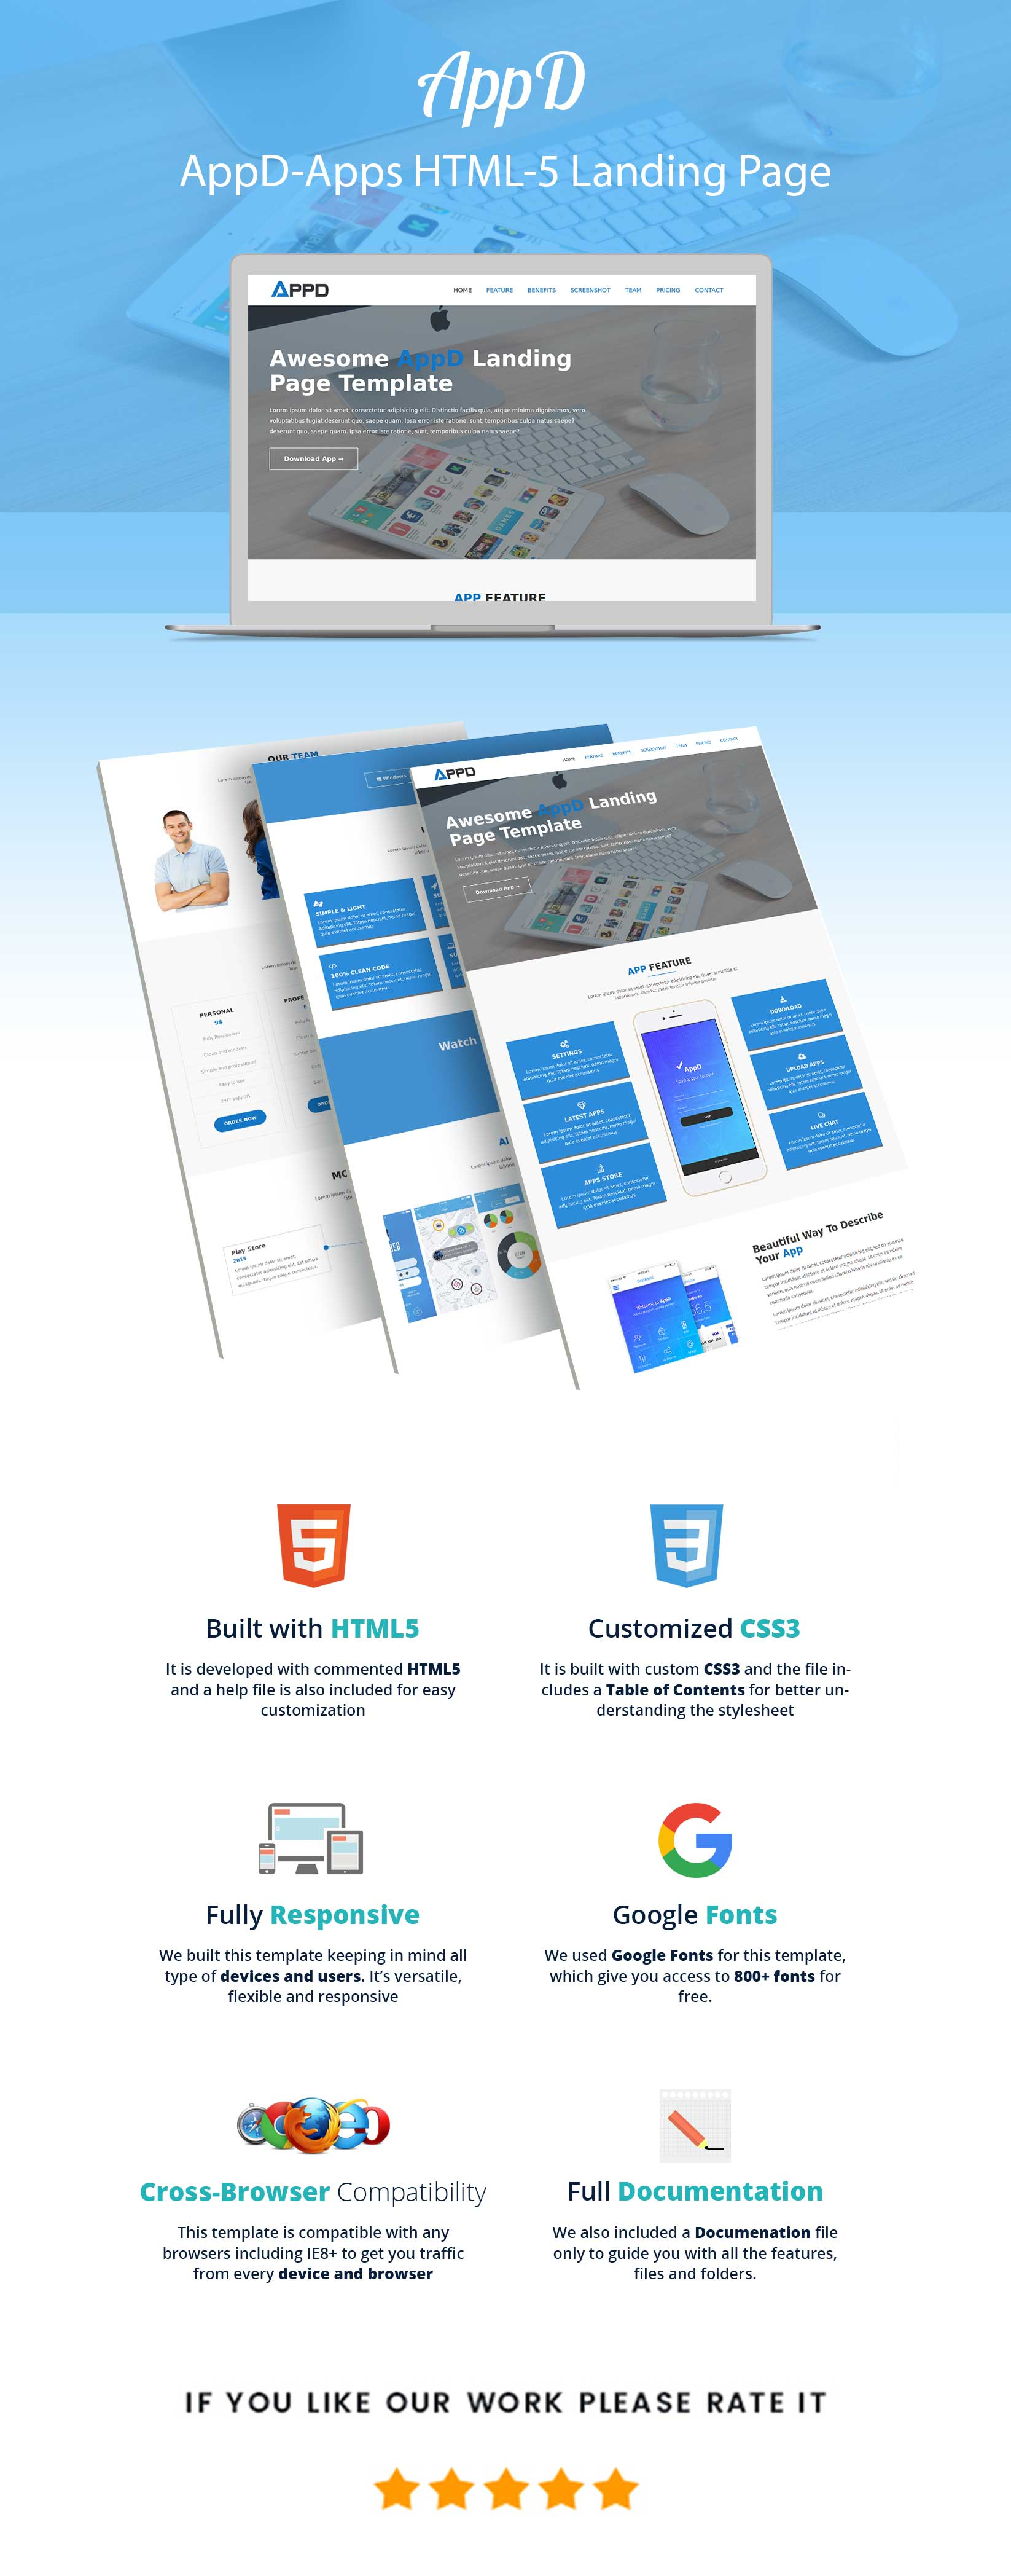 Appd Apps Template